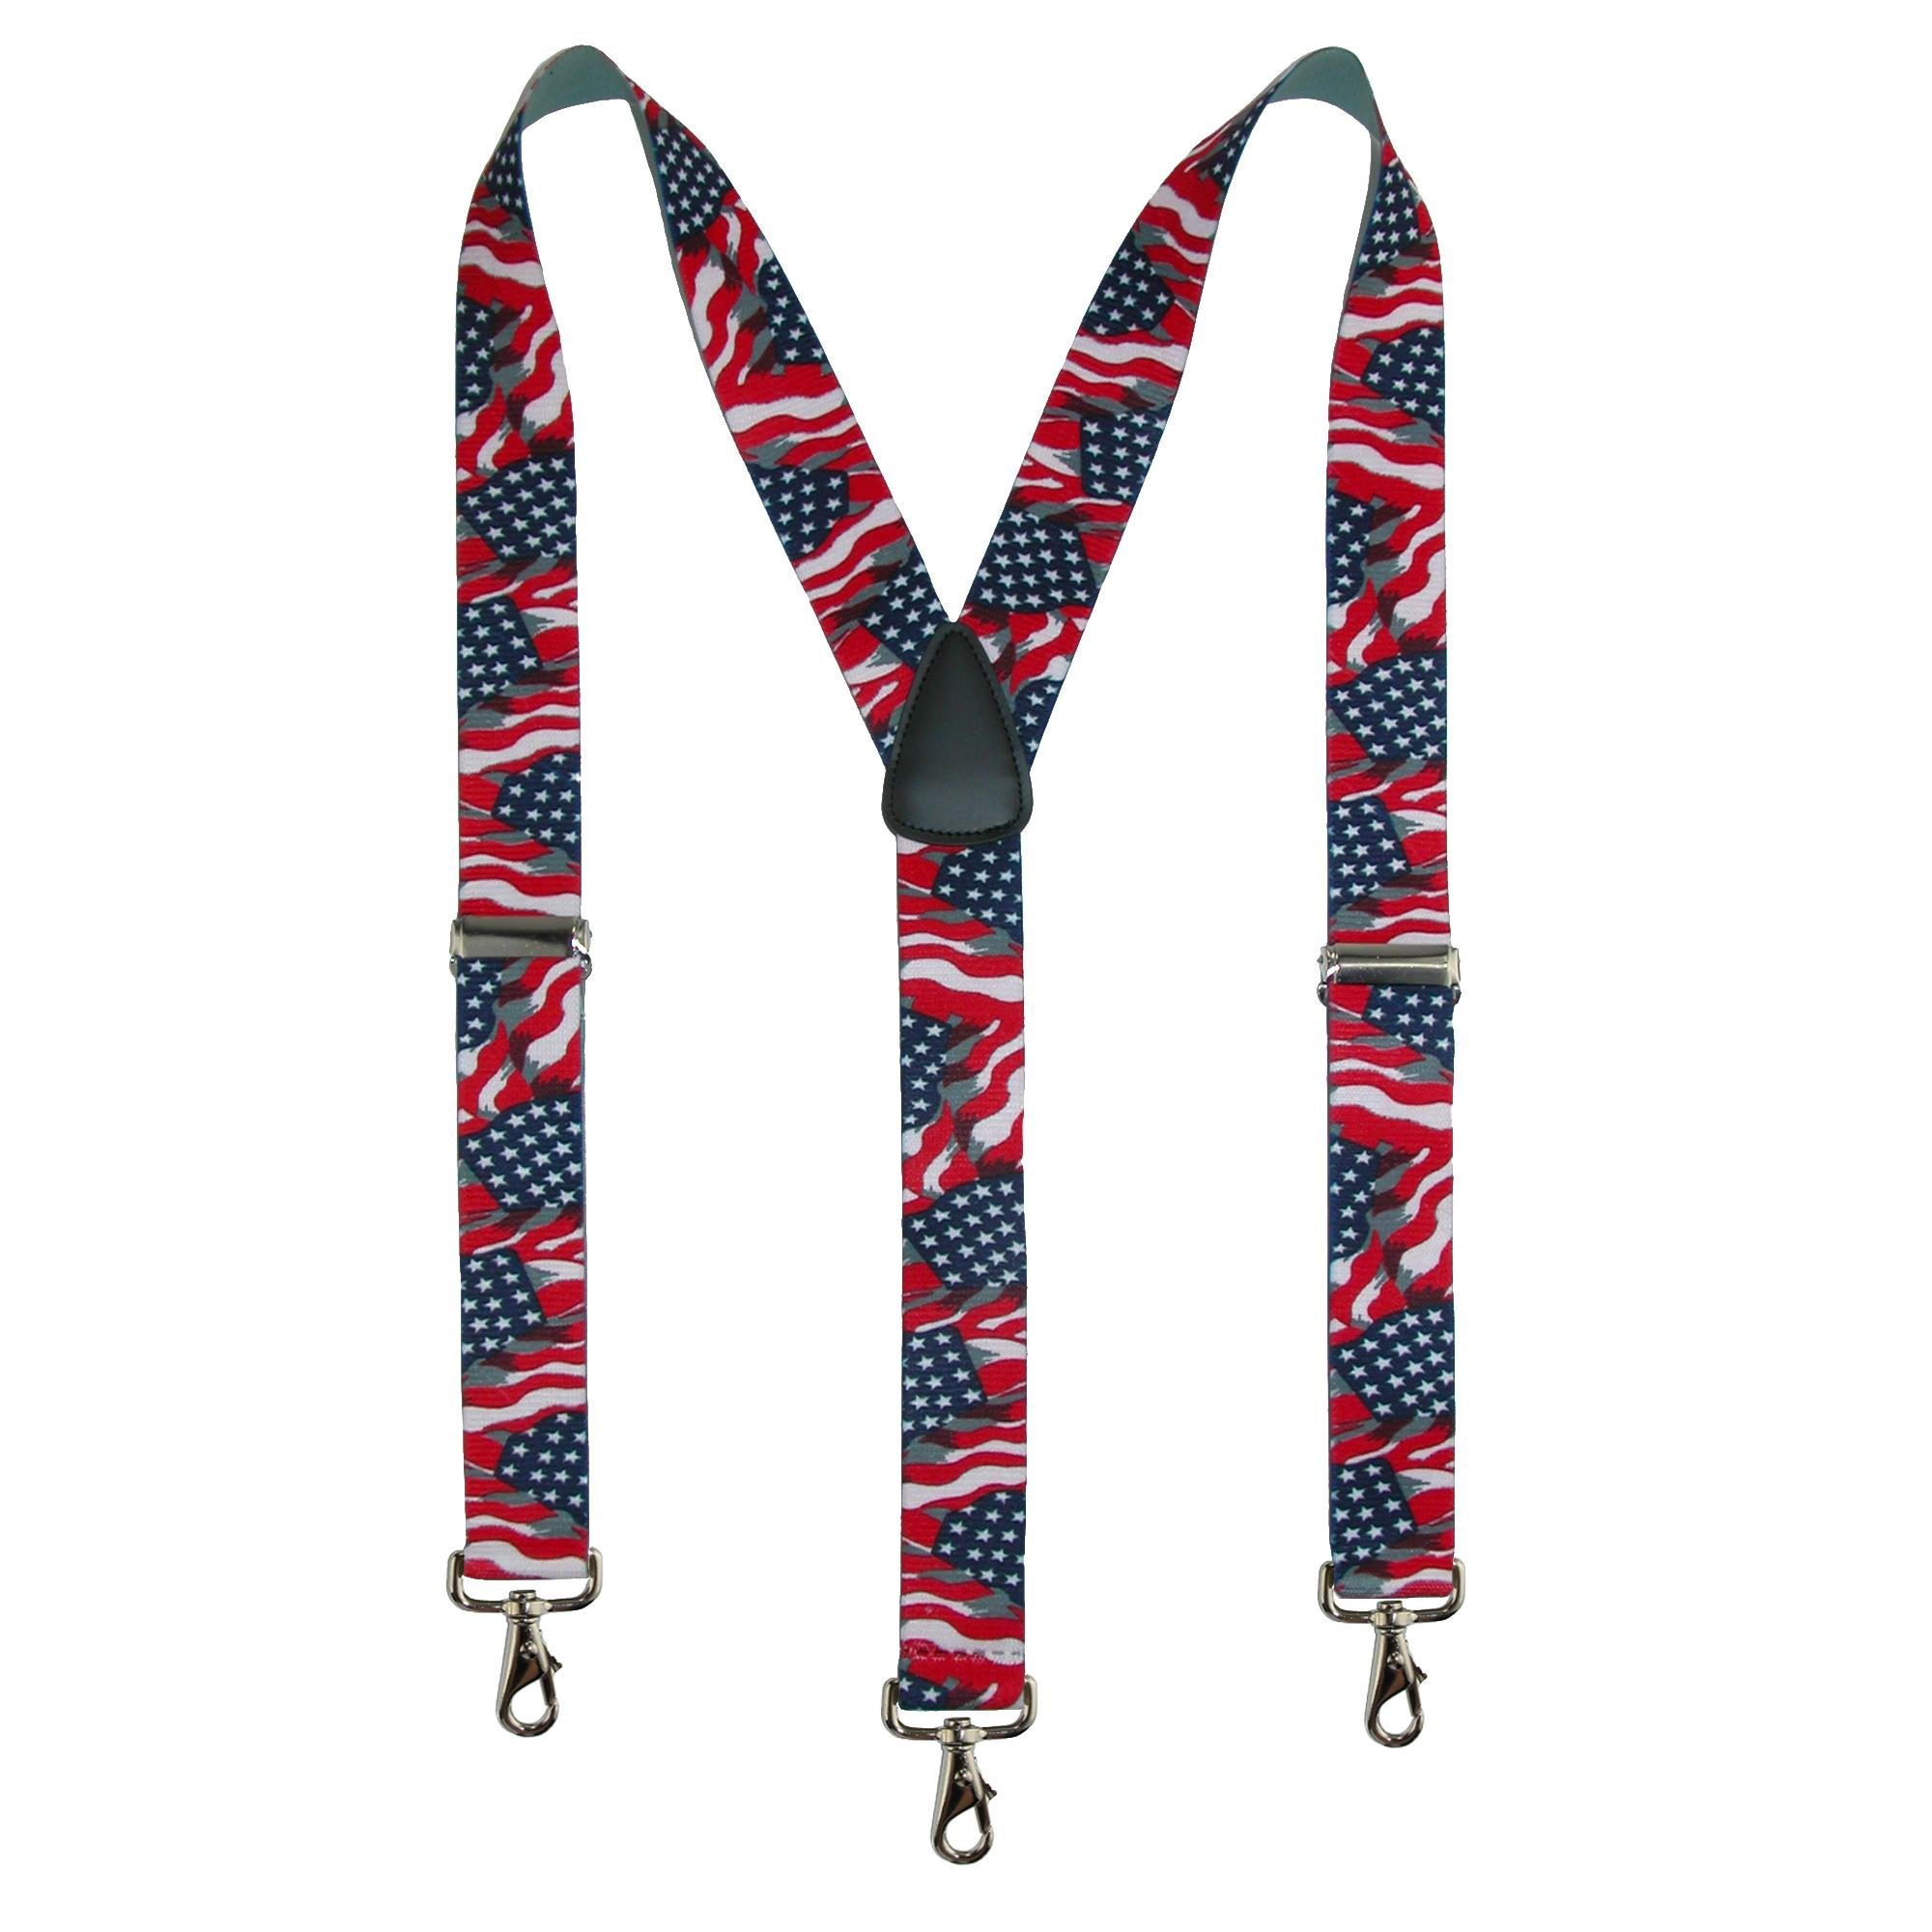 CTM Men's Big & Tall Elastic American Flag Suspender with Hook Ends